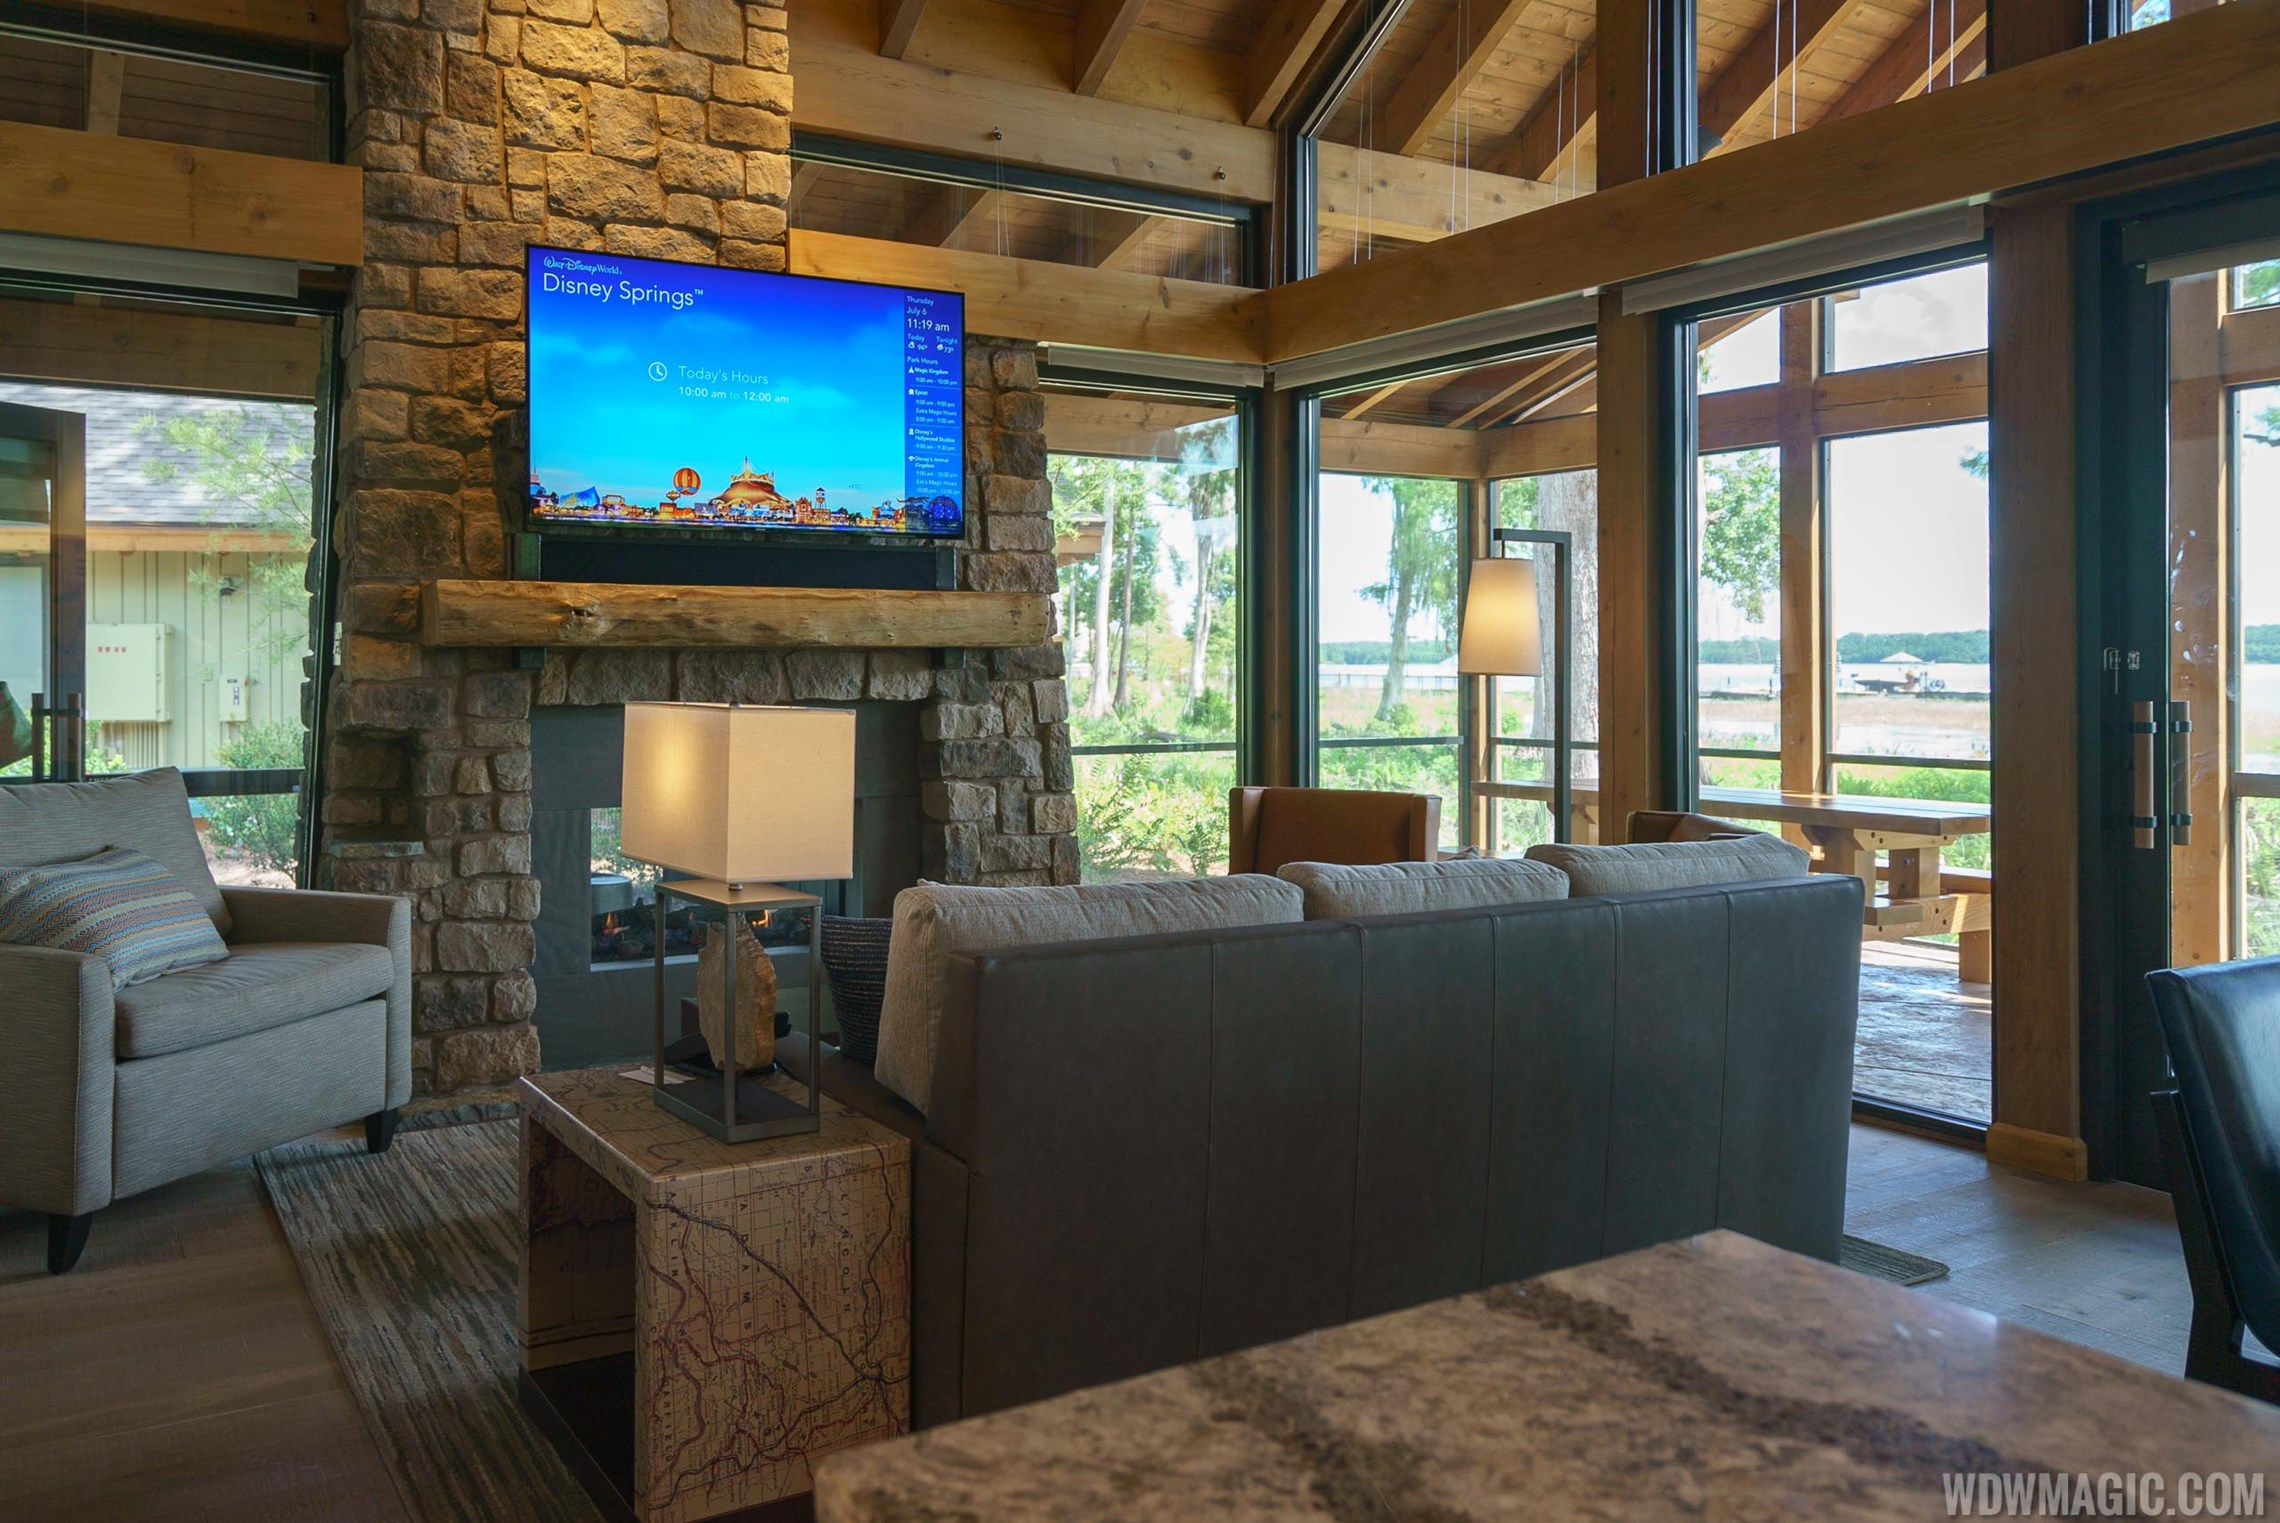 Tour of Copper Creek Villas and Cabins at Disney's Wilderness Lodge